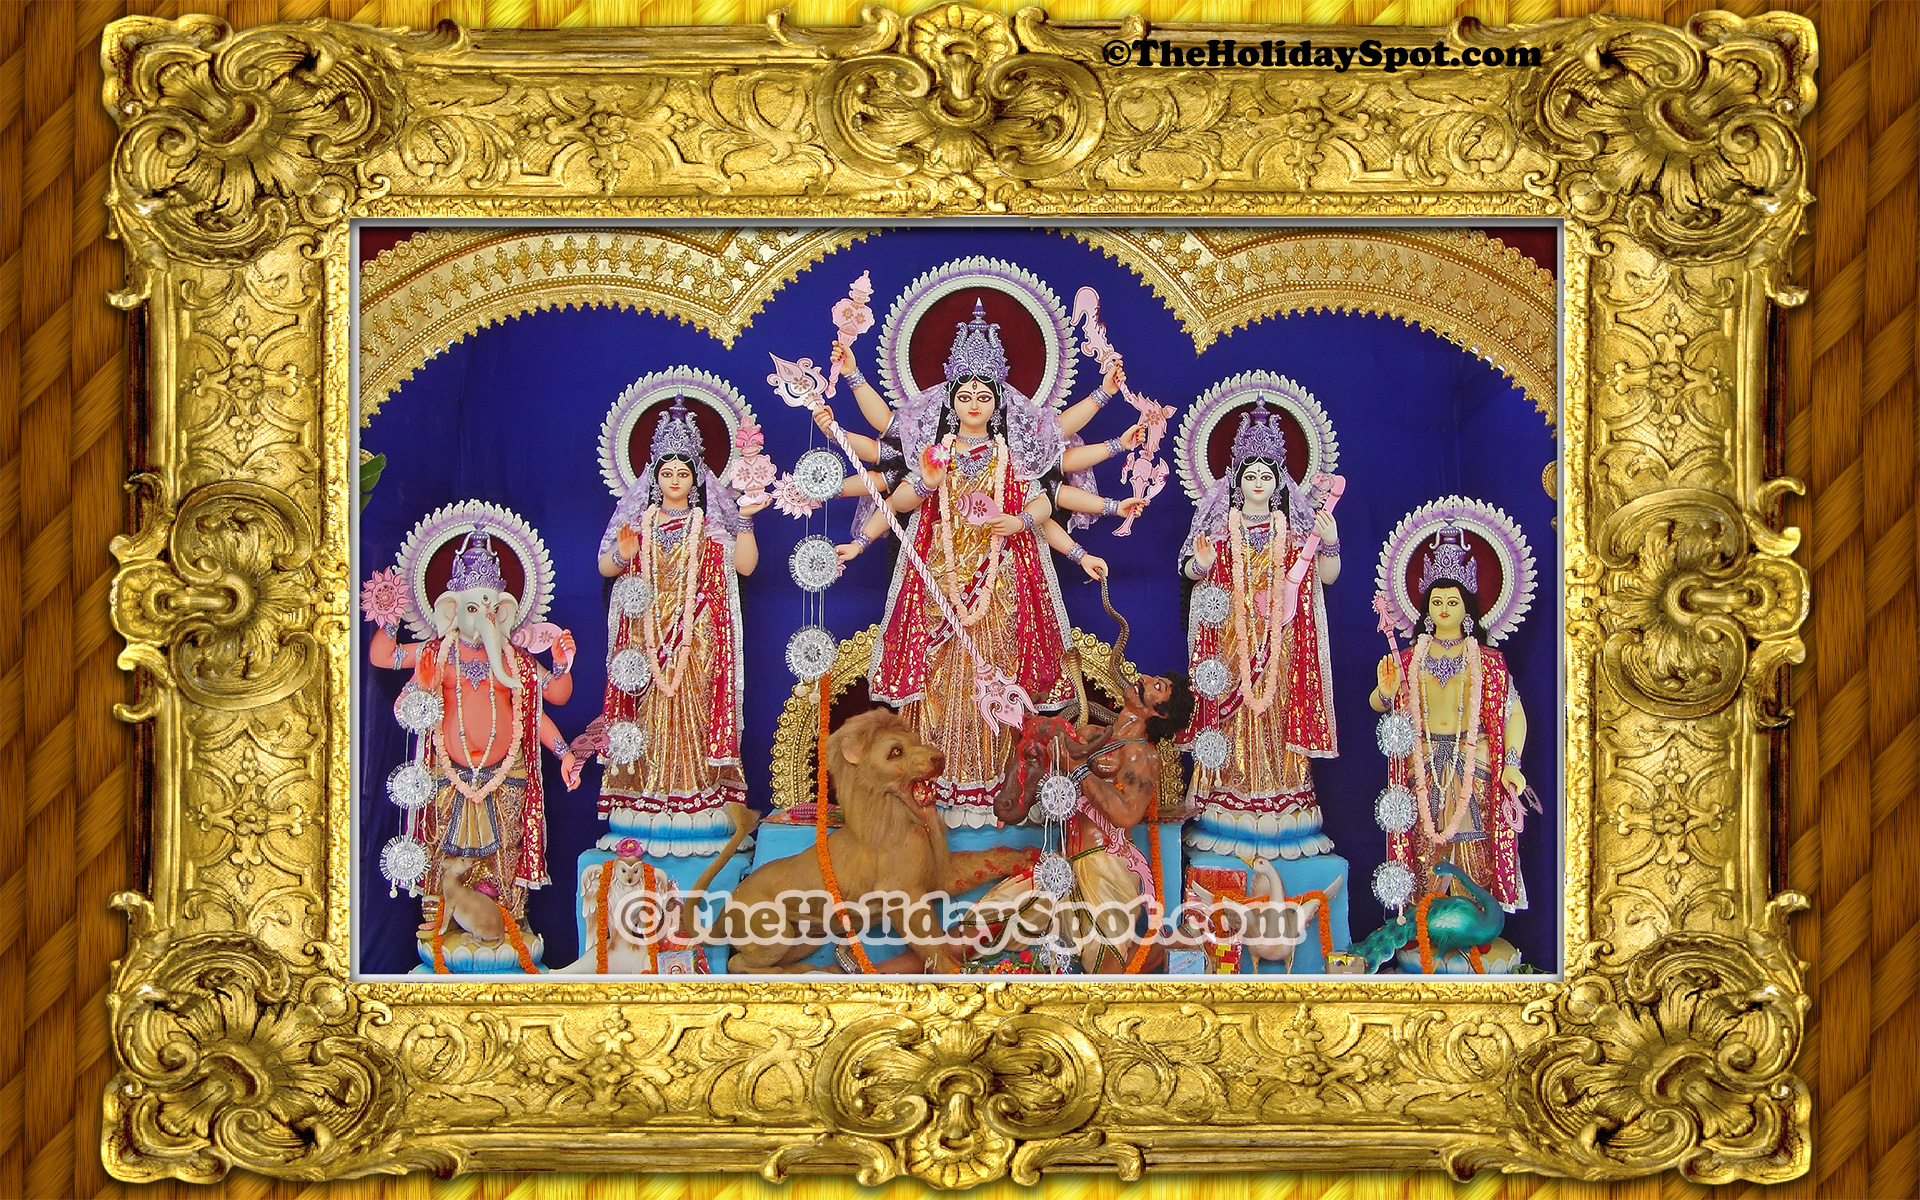 Durga Puja Wallpapers Its Free Download Now Durga Puja Images Hd Bengali Durga Puja Wallpaper Durga Puja Gallary